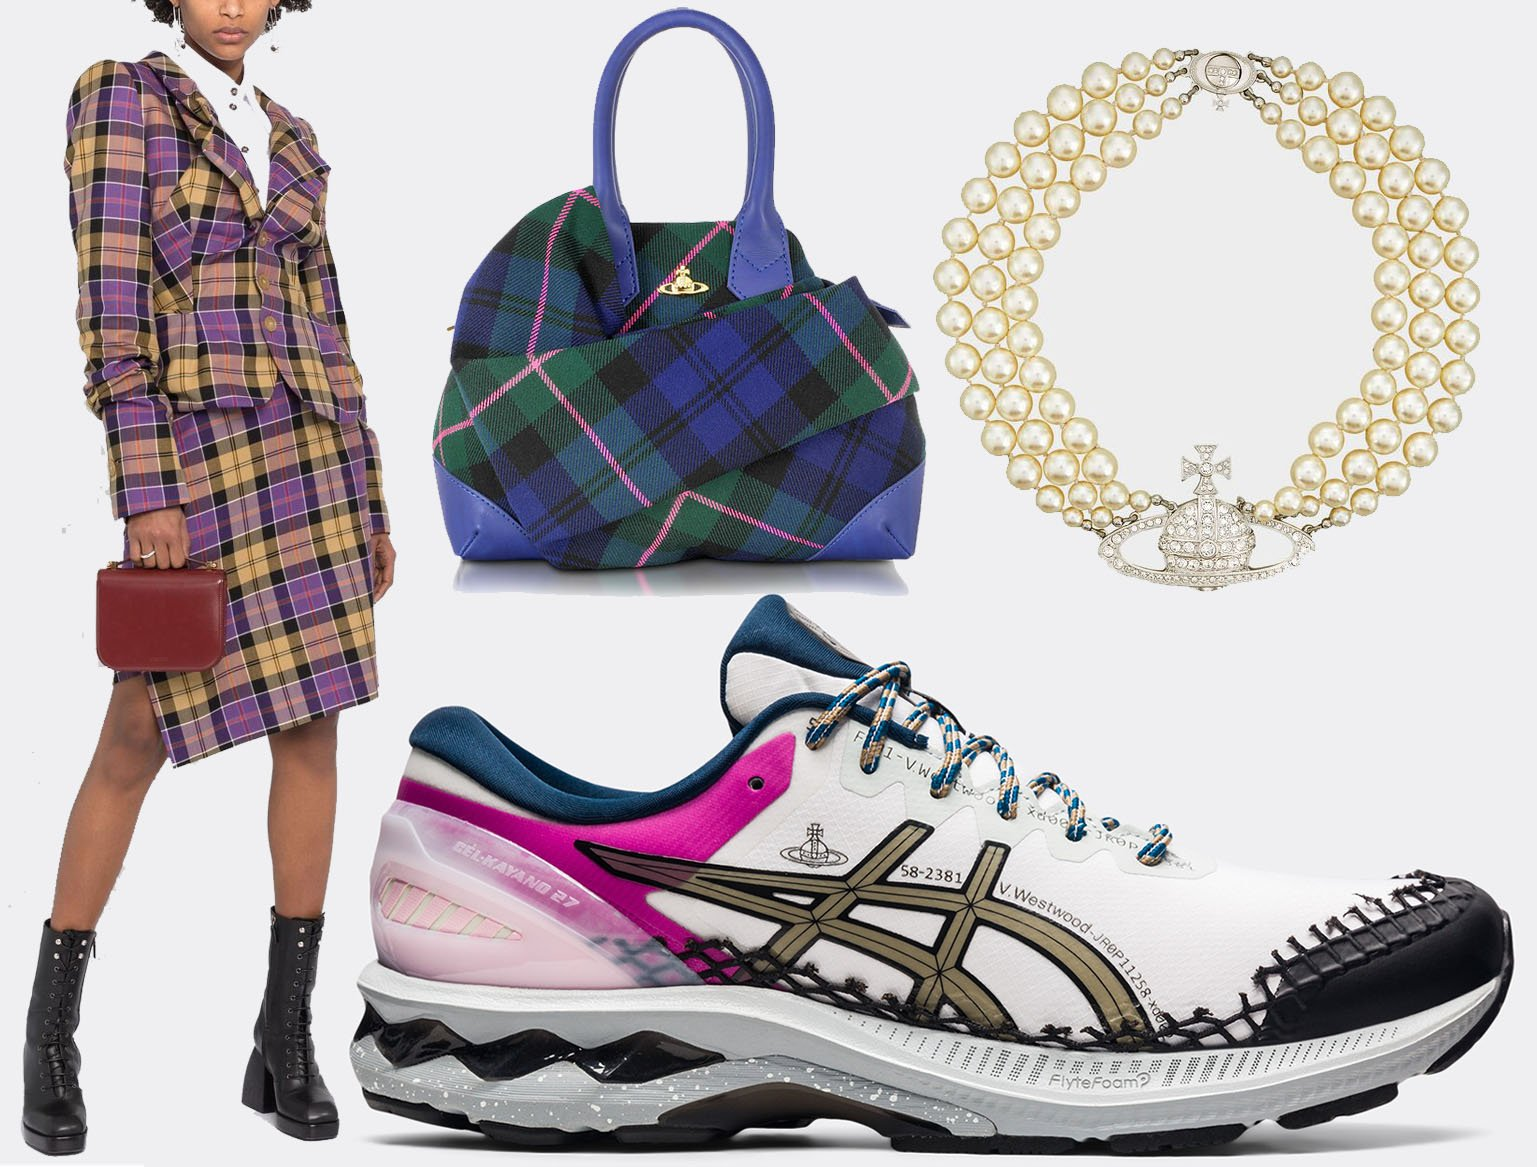 Vivienne Westwood is known for its modern punk and new wave styles and designs